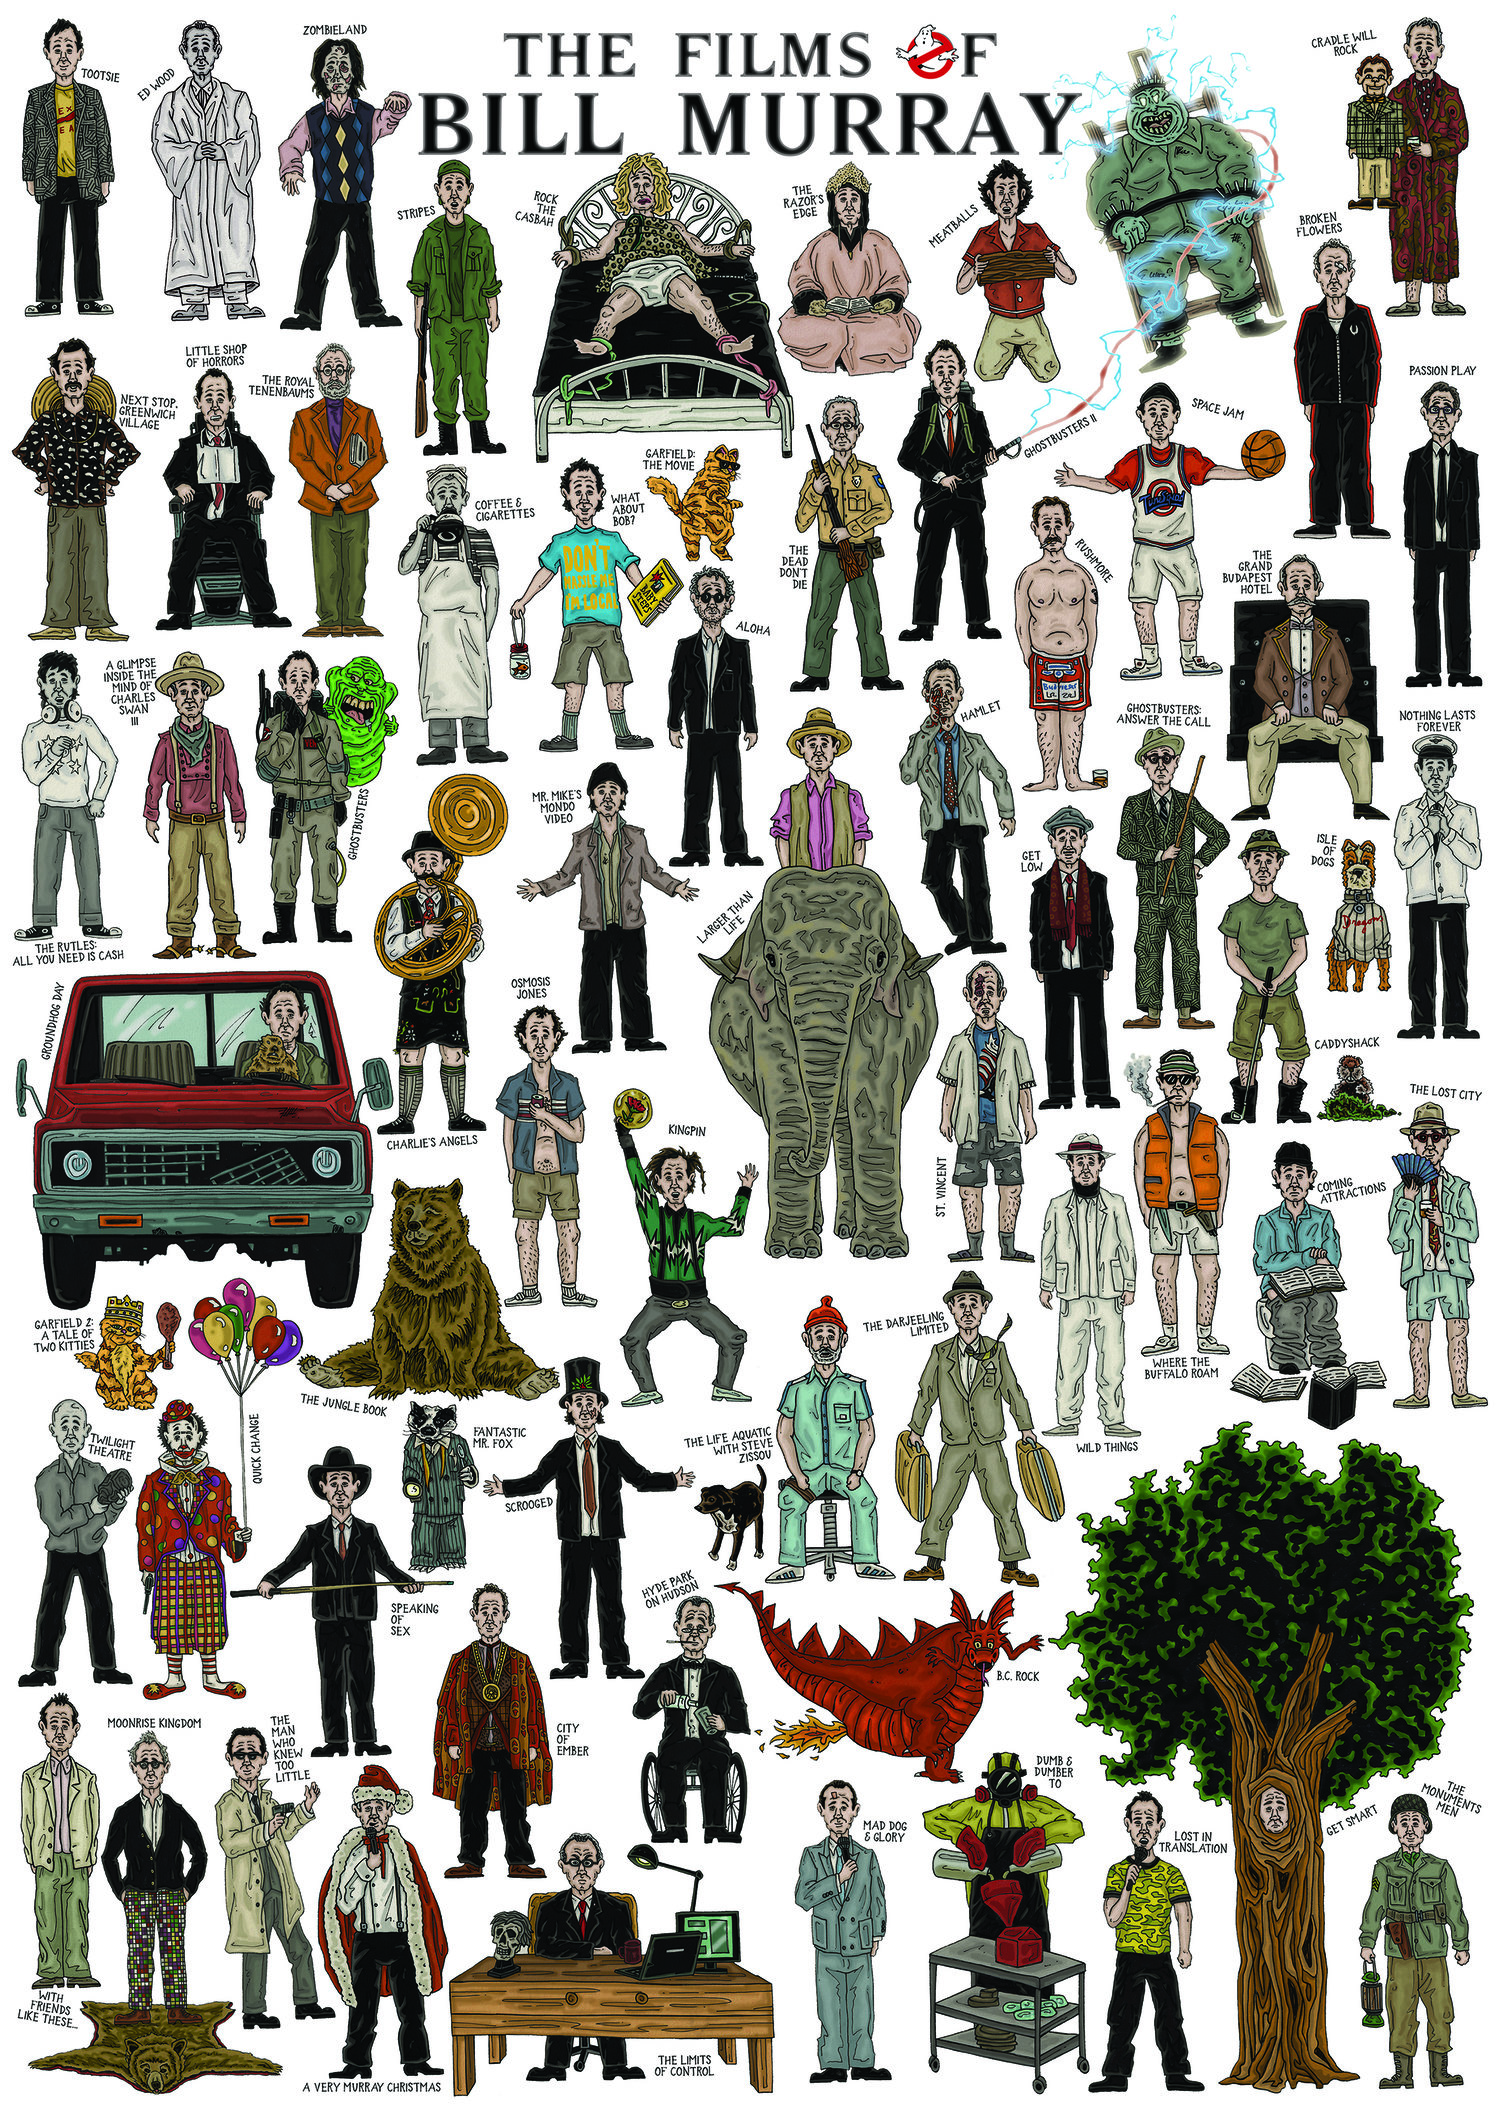 INFOGRAPHIC: The films of Bill Murray — Every Movie Has a Lesson.